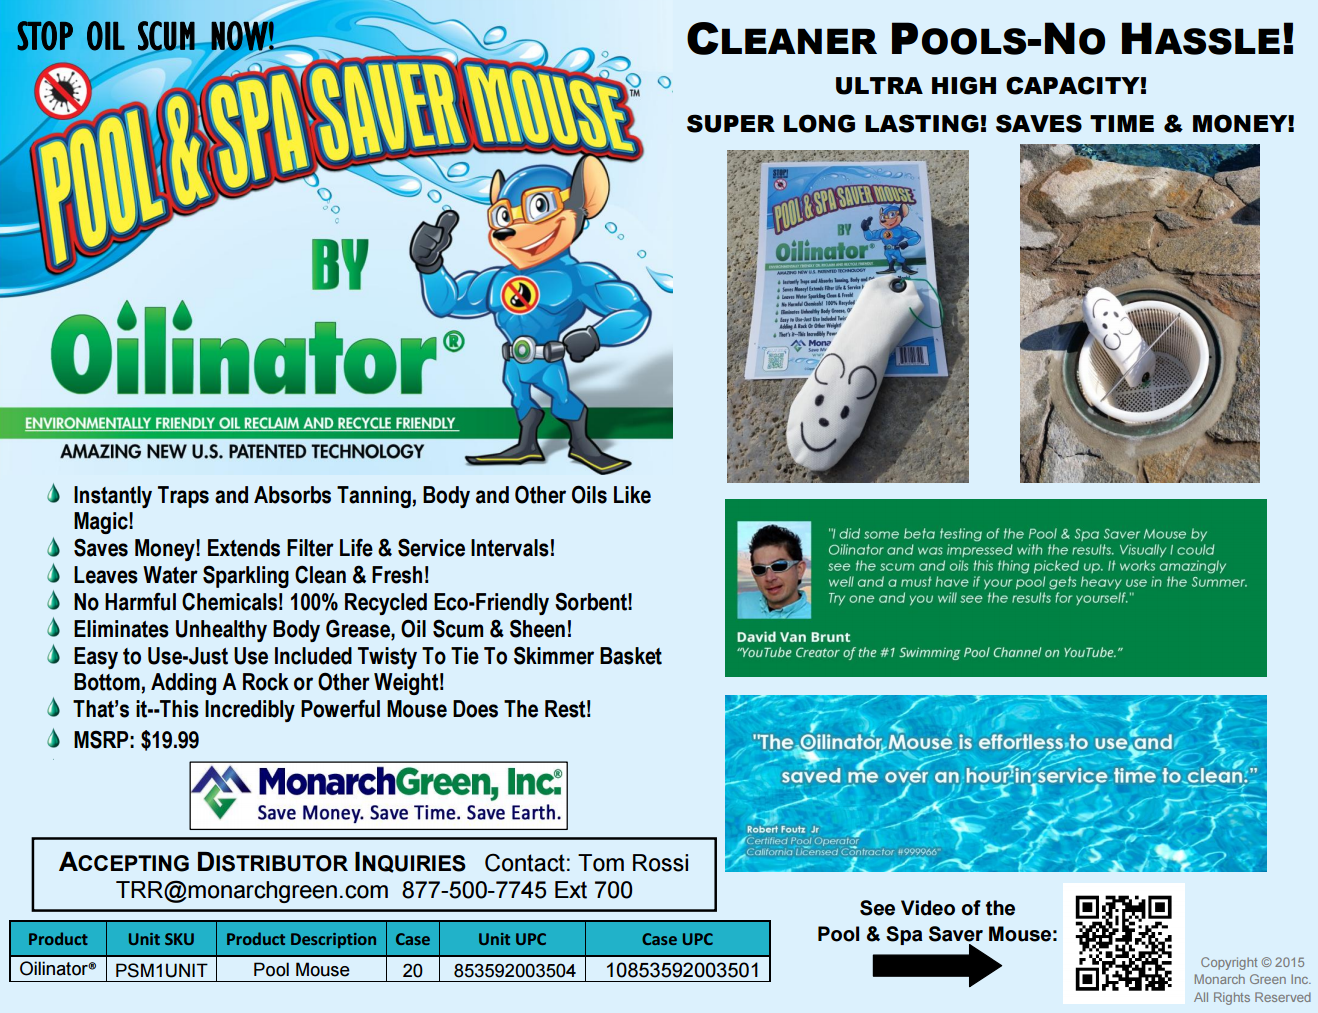 Cleaner Pools - No Hassle! | Pool & Spa Cleaning Products - Pool ...